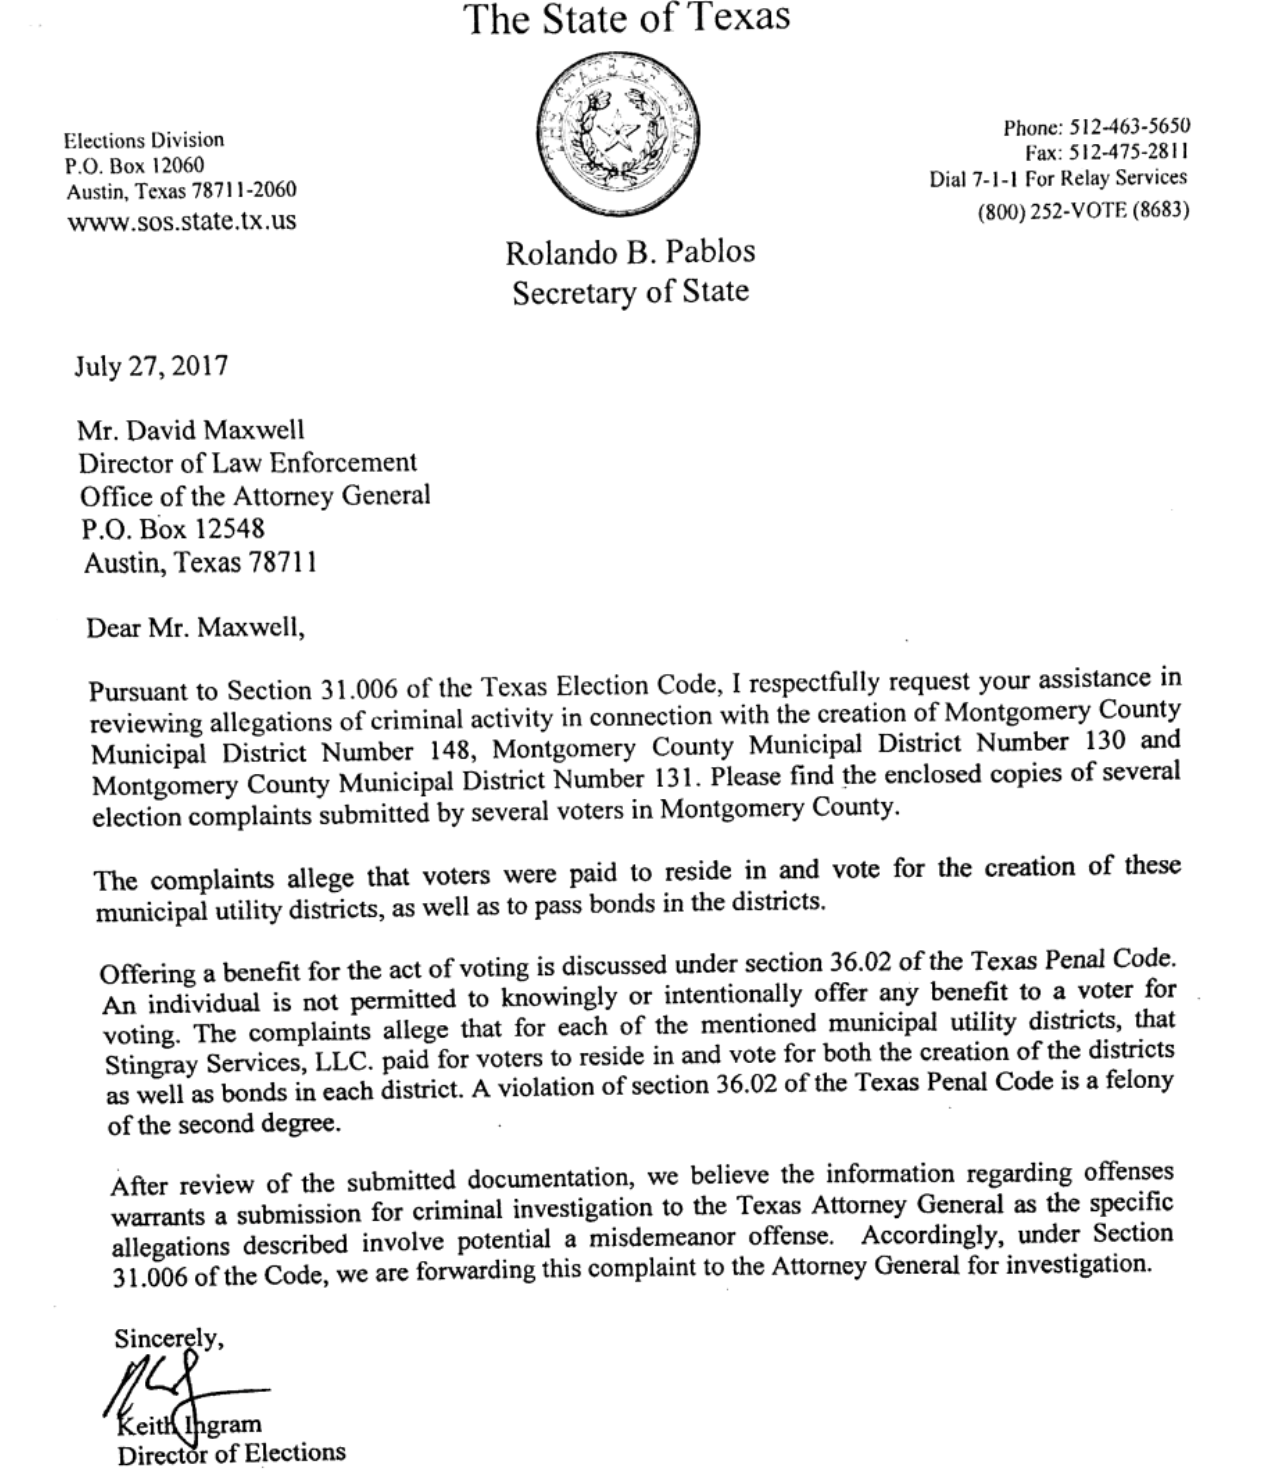 Criminal Referral Cover Letter From Texas Secretary Of State To Texas  Attorney General.